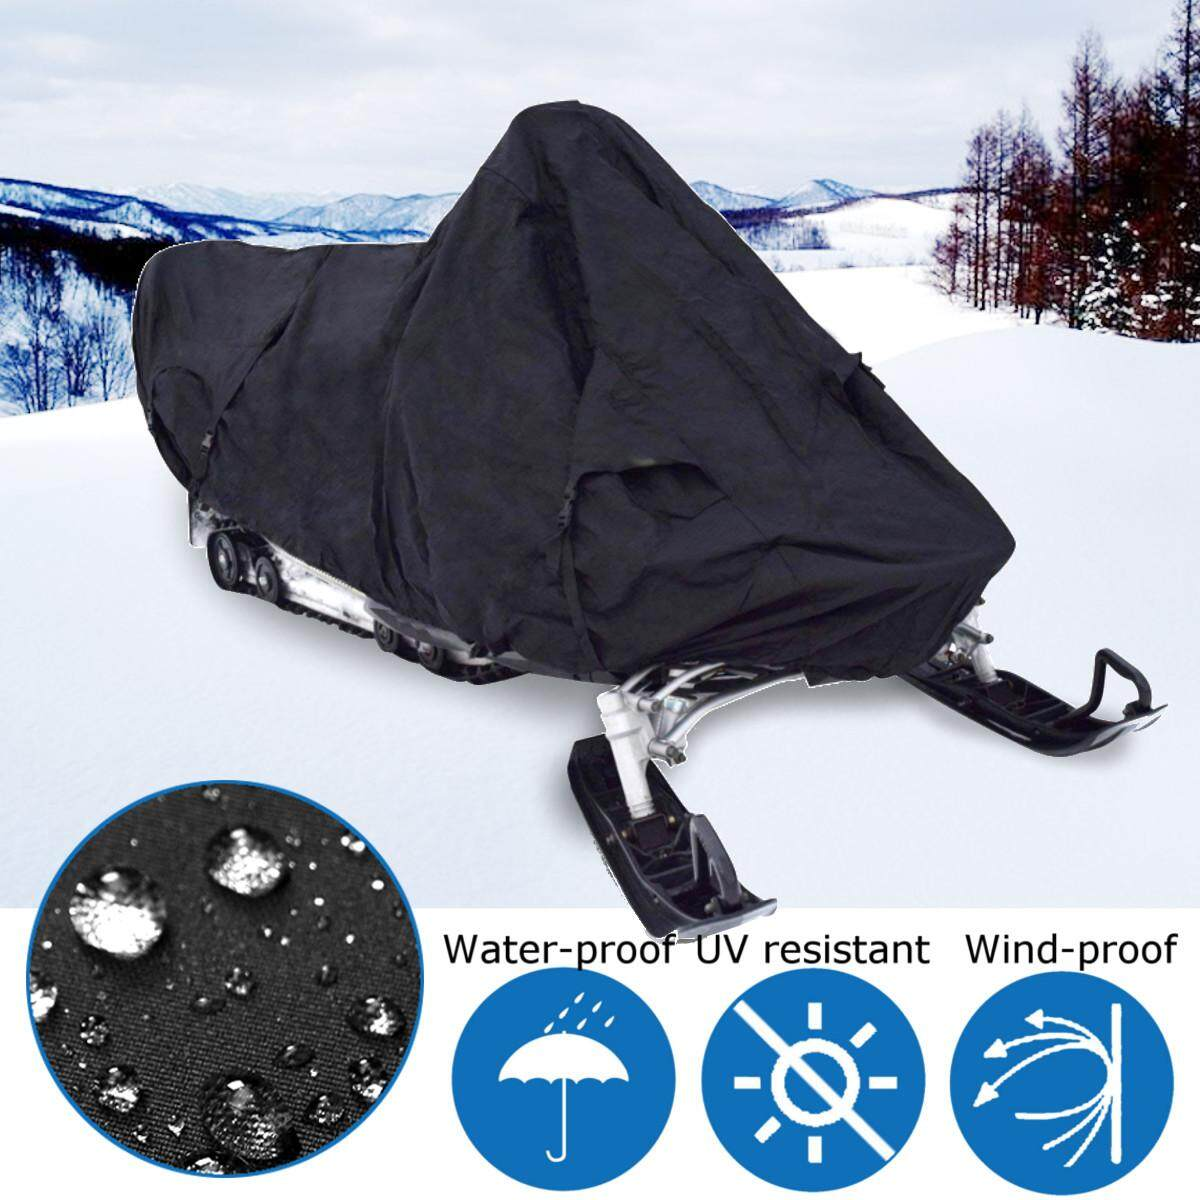 Budge Sportsman Trailerable Snowmobile Cover Fits Snowmobiles 130 Long X 51 Wide X 48 High, Sm-7 By Glimmer.